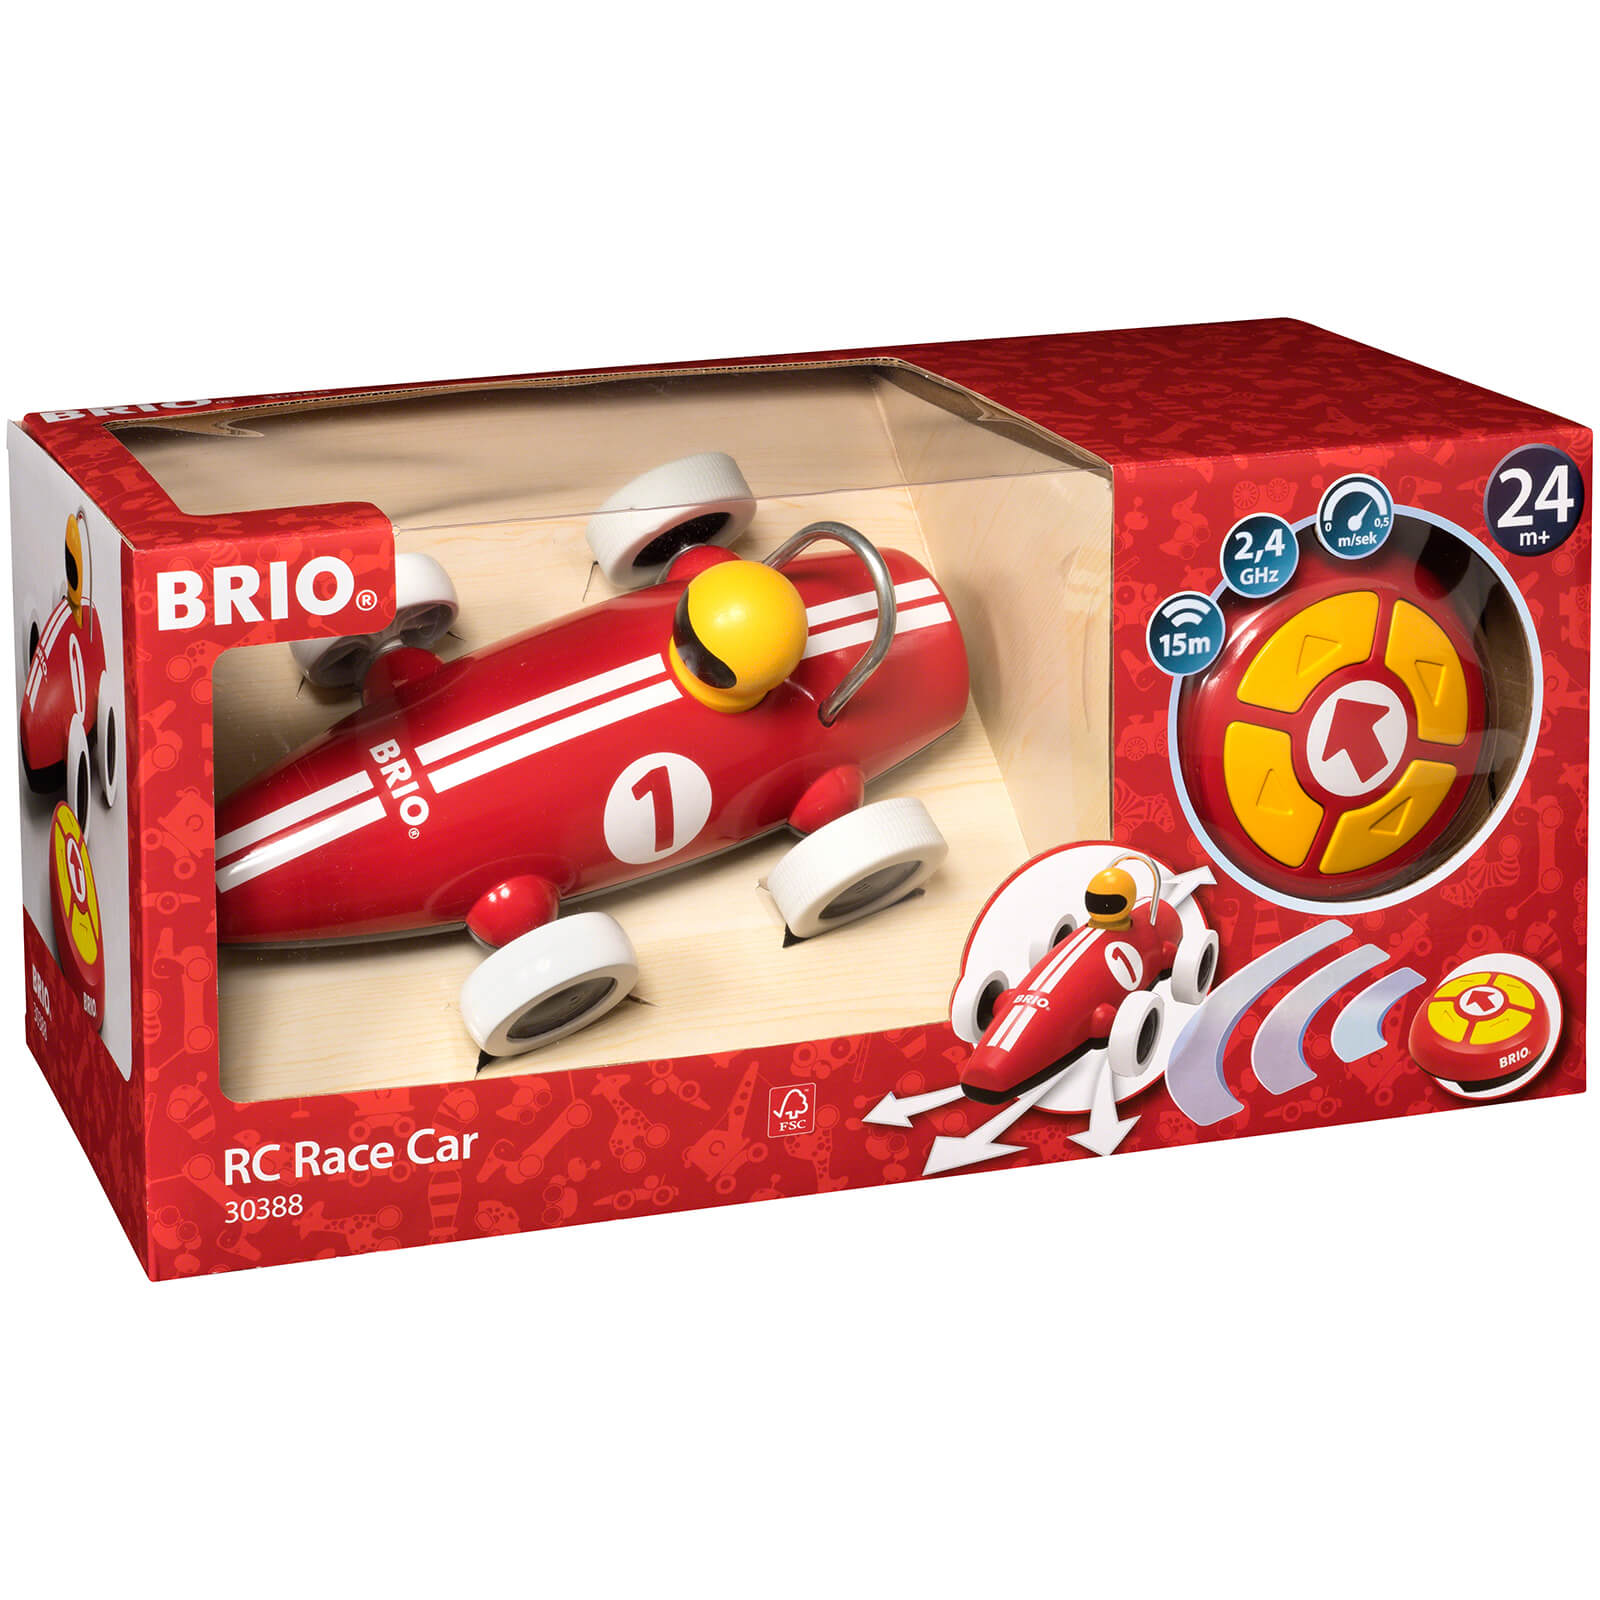 Brio Remote Control Race Car